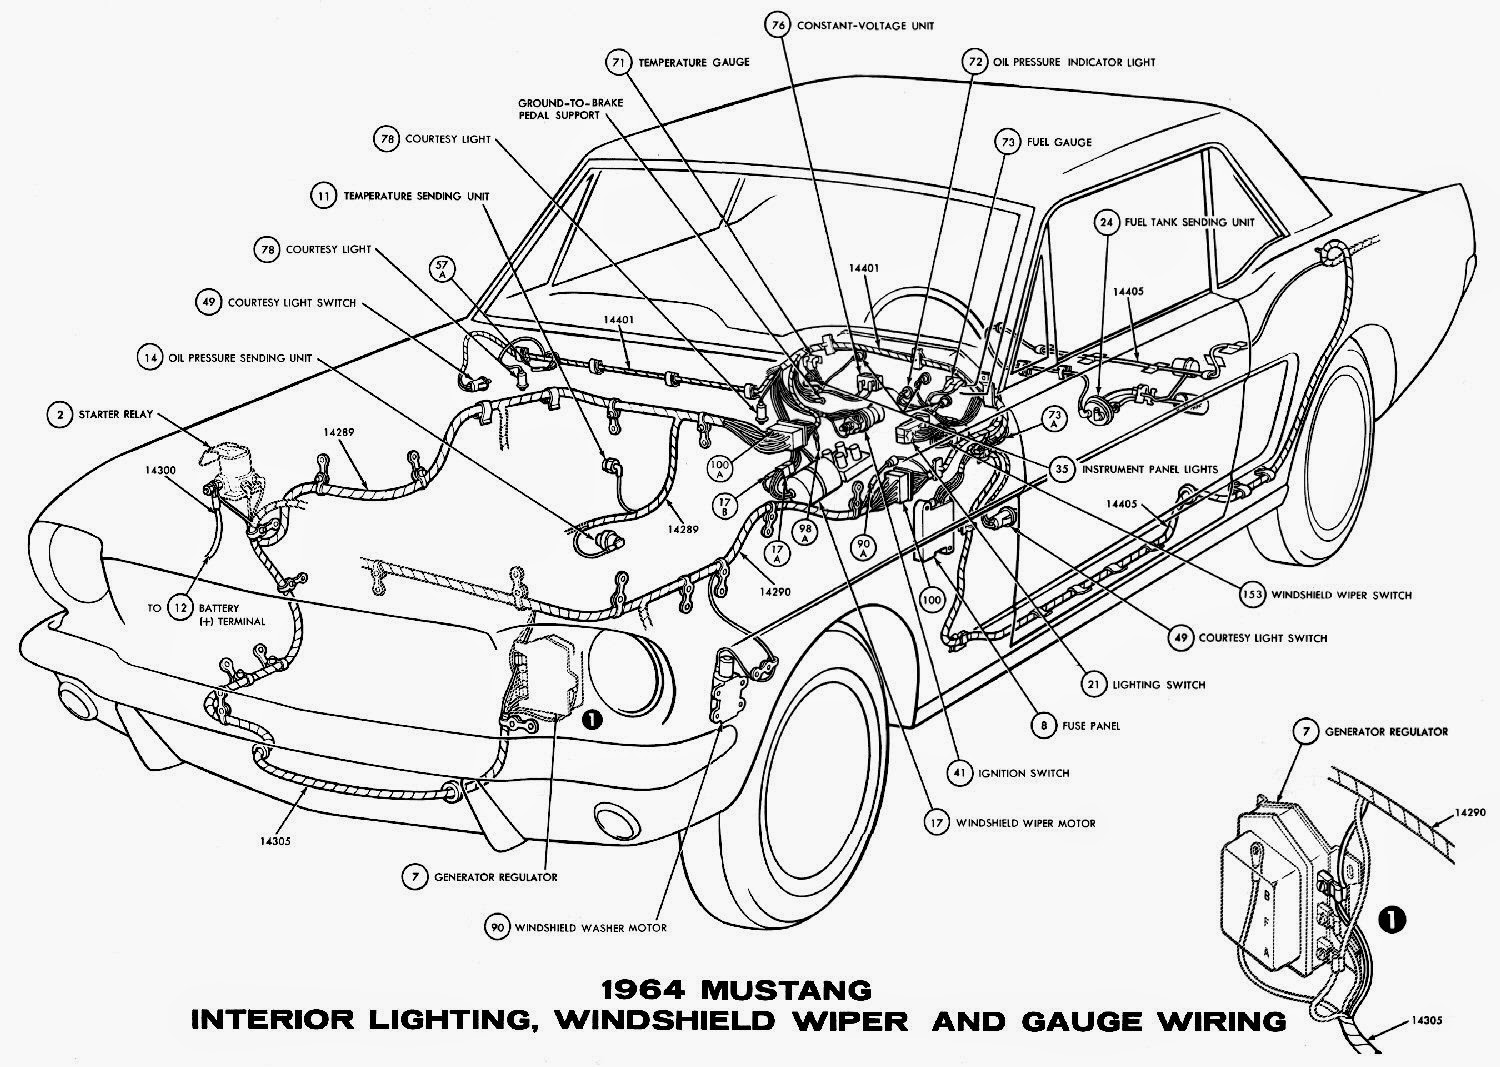 peugeot 206 interior light wiring diagram